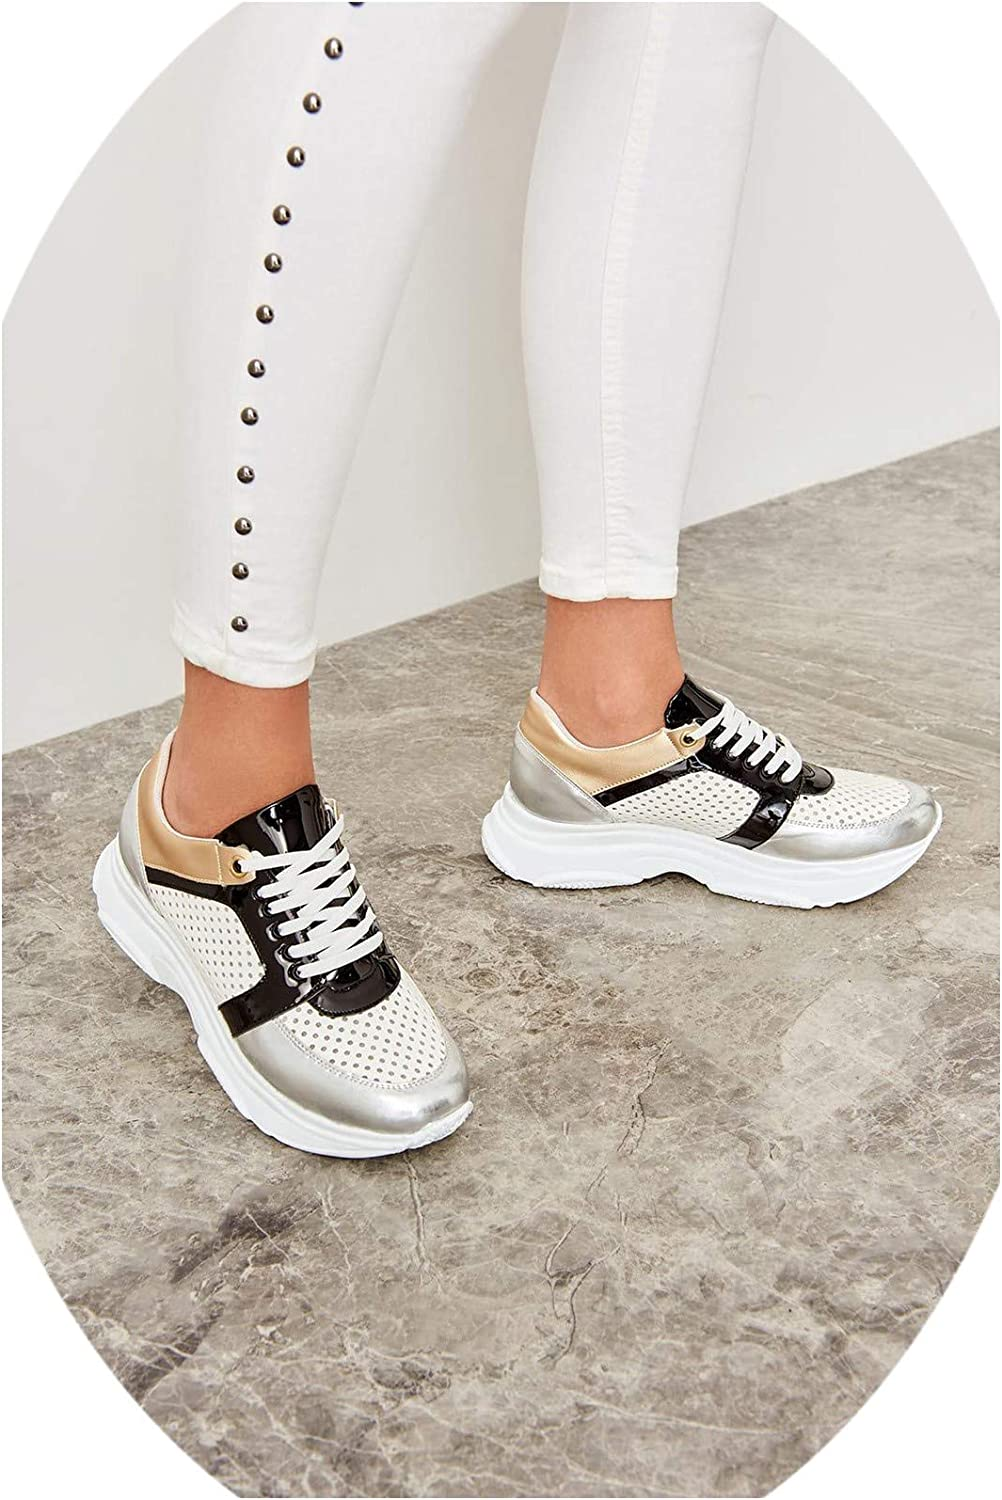 Nova's choice-fashion-sneakers Silver Metallic Women Sneaker TAKSS19GA0077